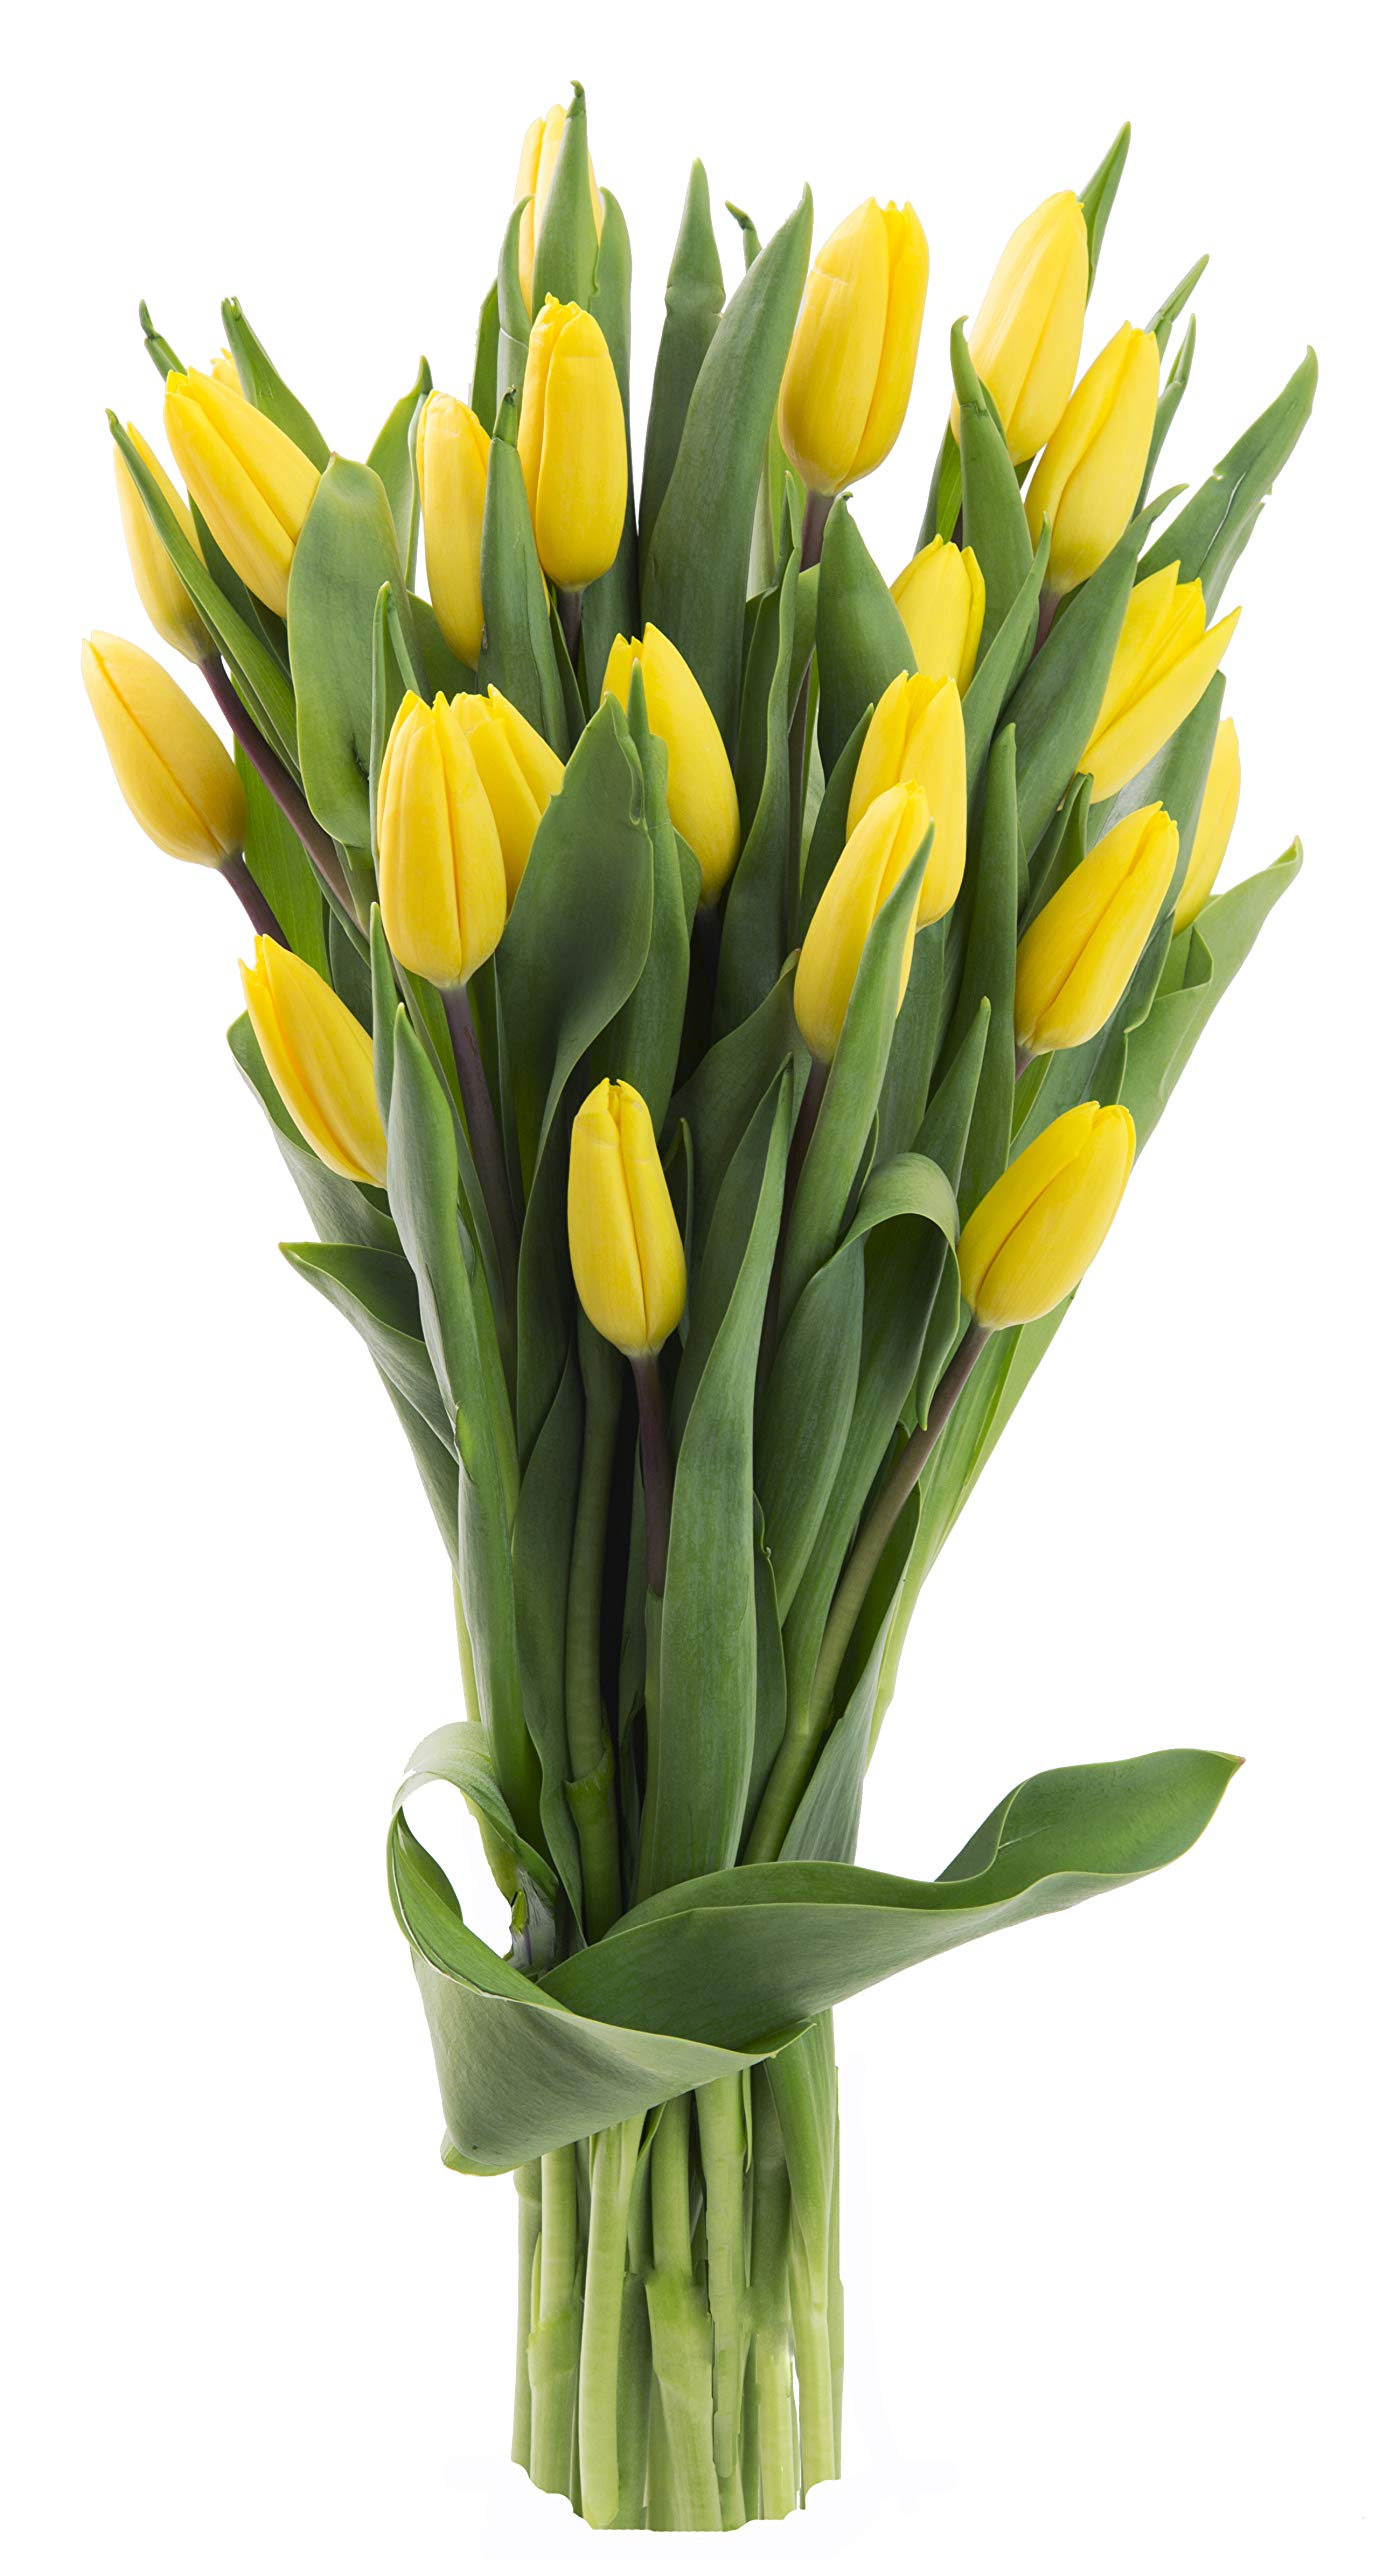 Blooms2Door 20 Yellow Tulips (Farm-Fresh Flowers, Cut-to-Order, and Homegrown in the USA)